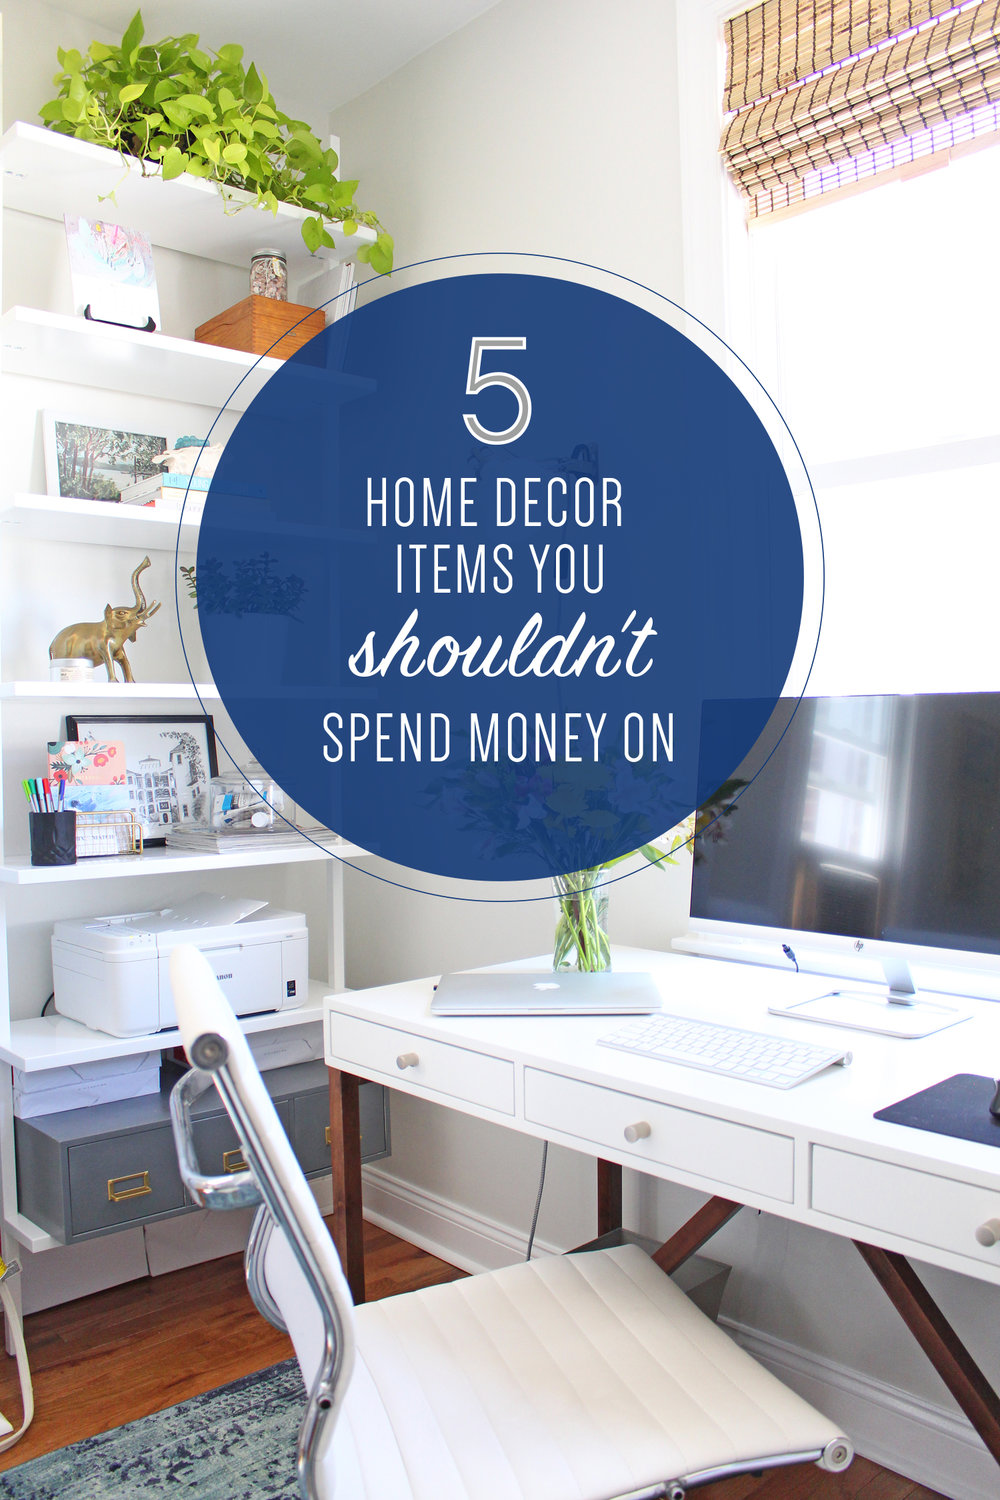 5 Home Decor Items You Shouldn't Spend Money On | Affordable decorating, budget-friendly decorating tips, budget-friendly design ideas